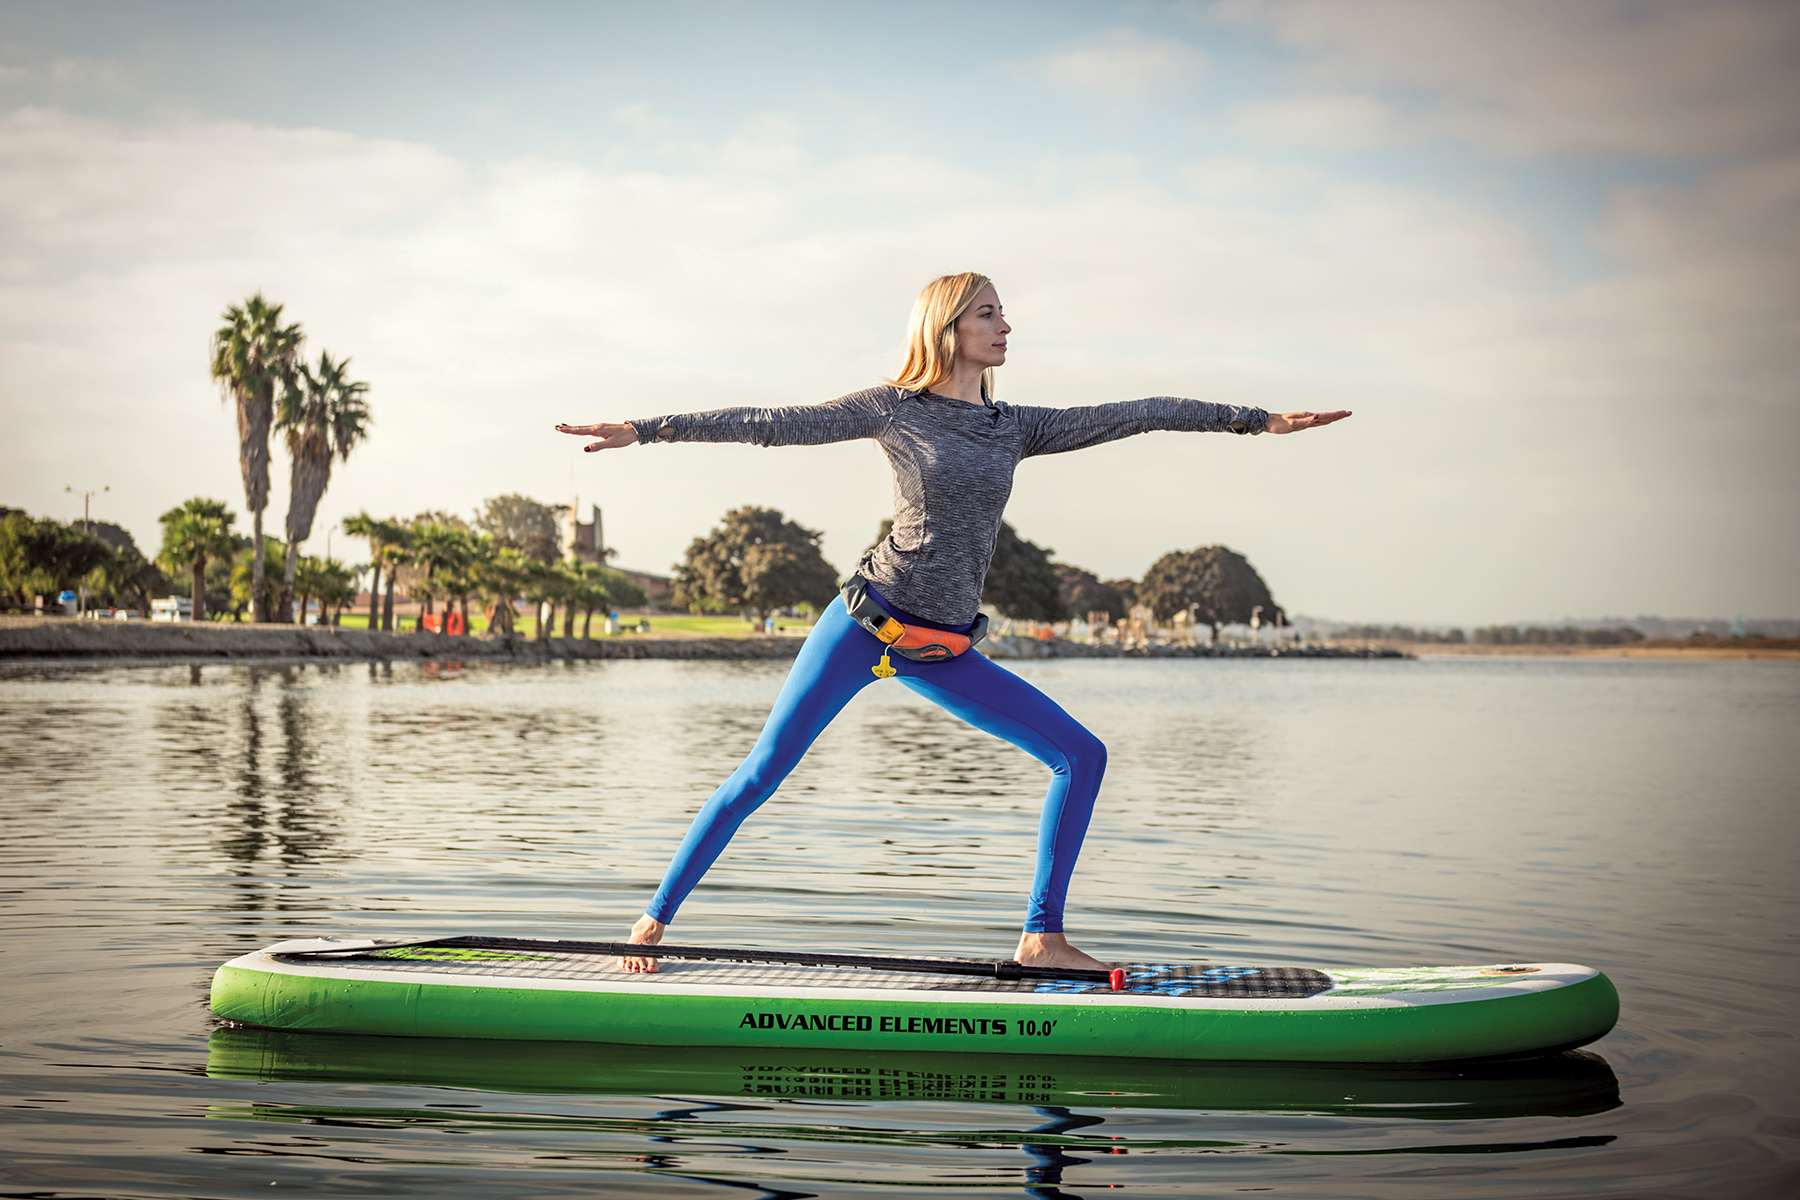 Paddleboards: Lotus YSUP by Advanced Elements - Image 4516